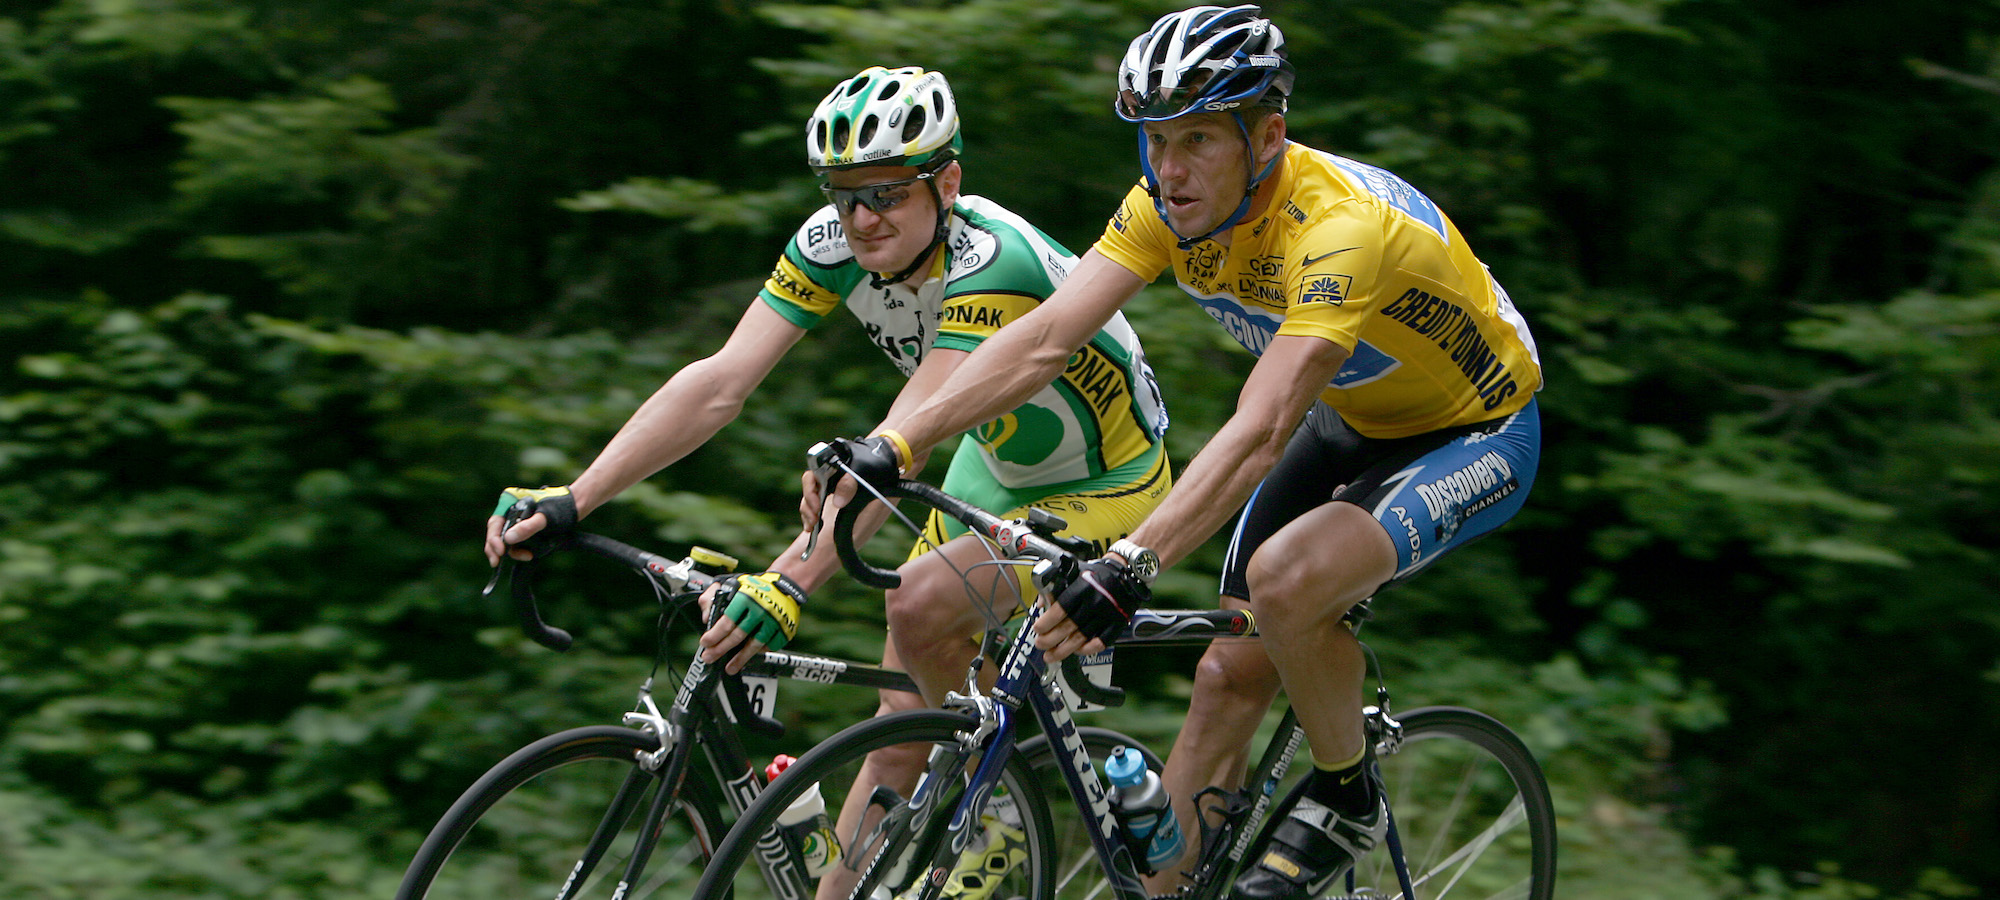 Floyd Landis says cycling is not clean in post-Armstrong era - Cycling  Weekly eed45e880